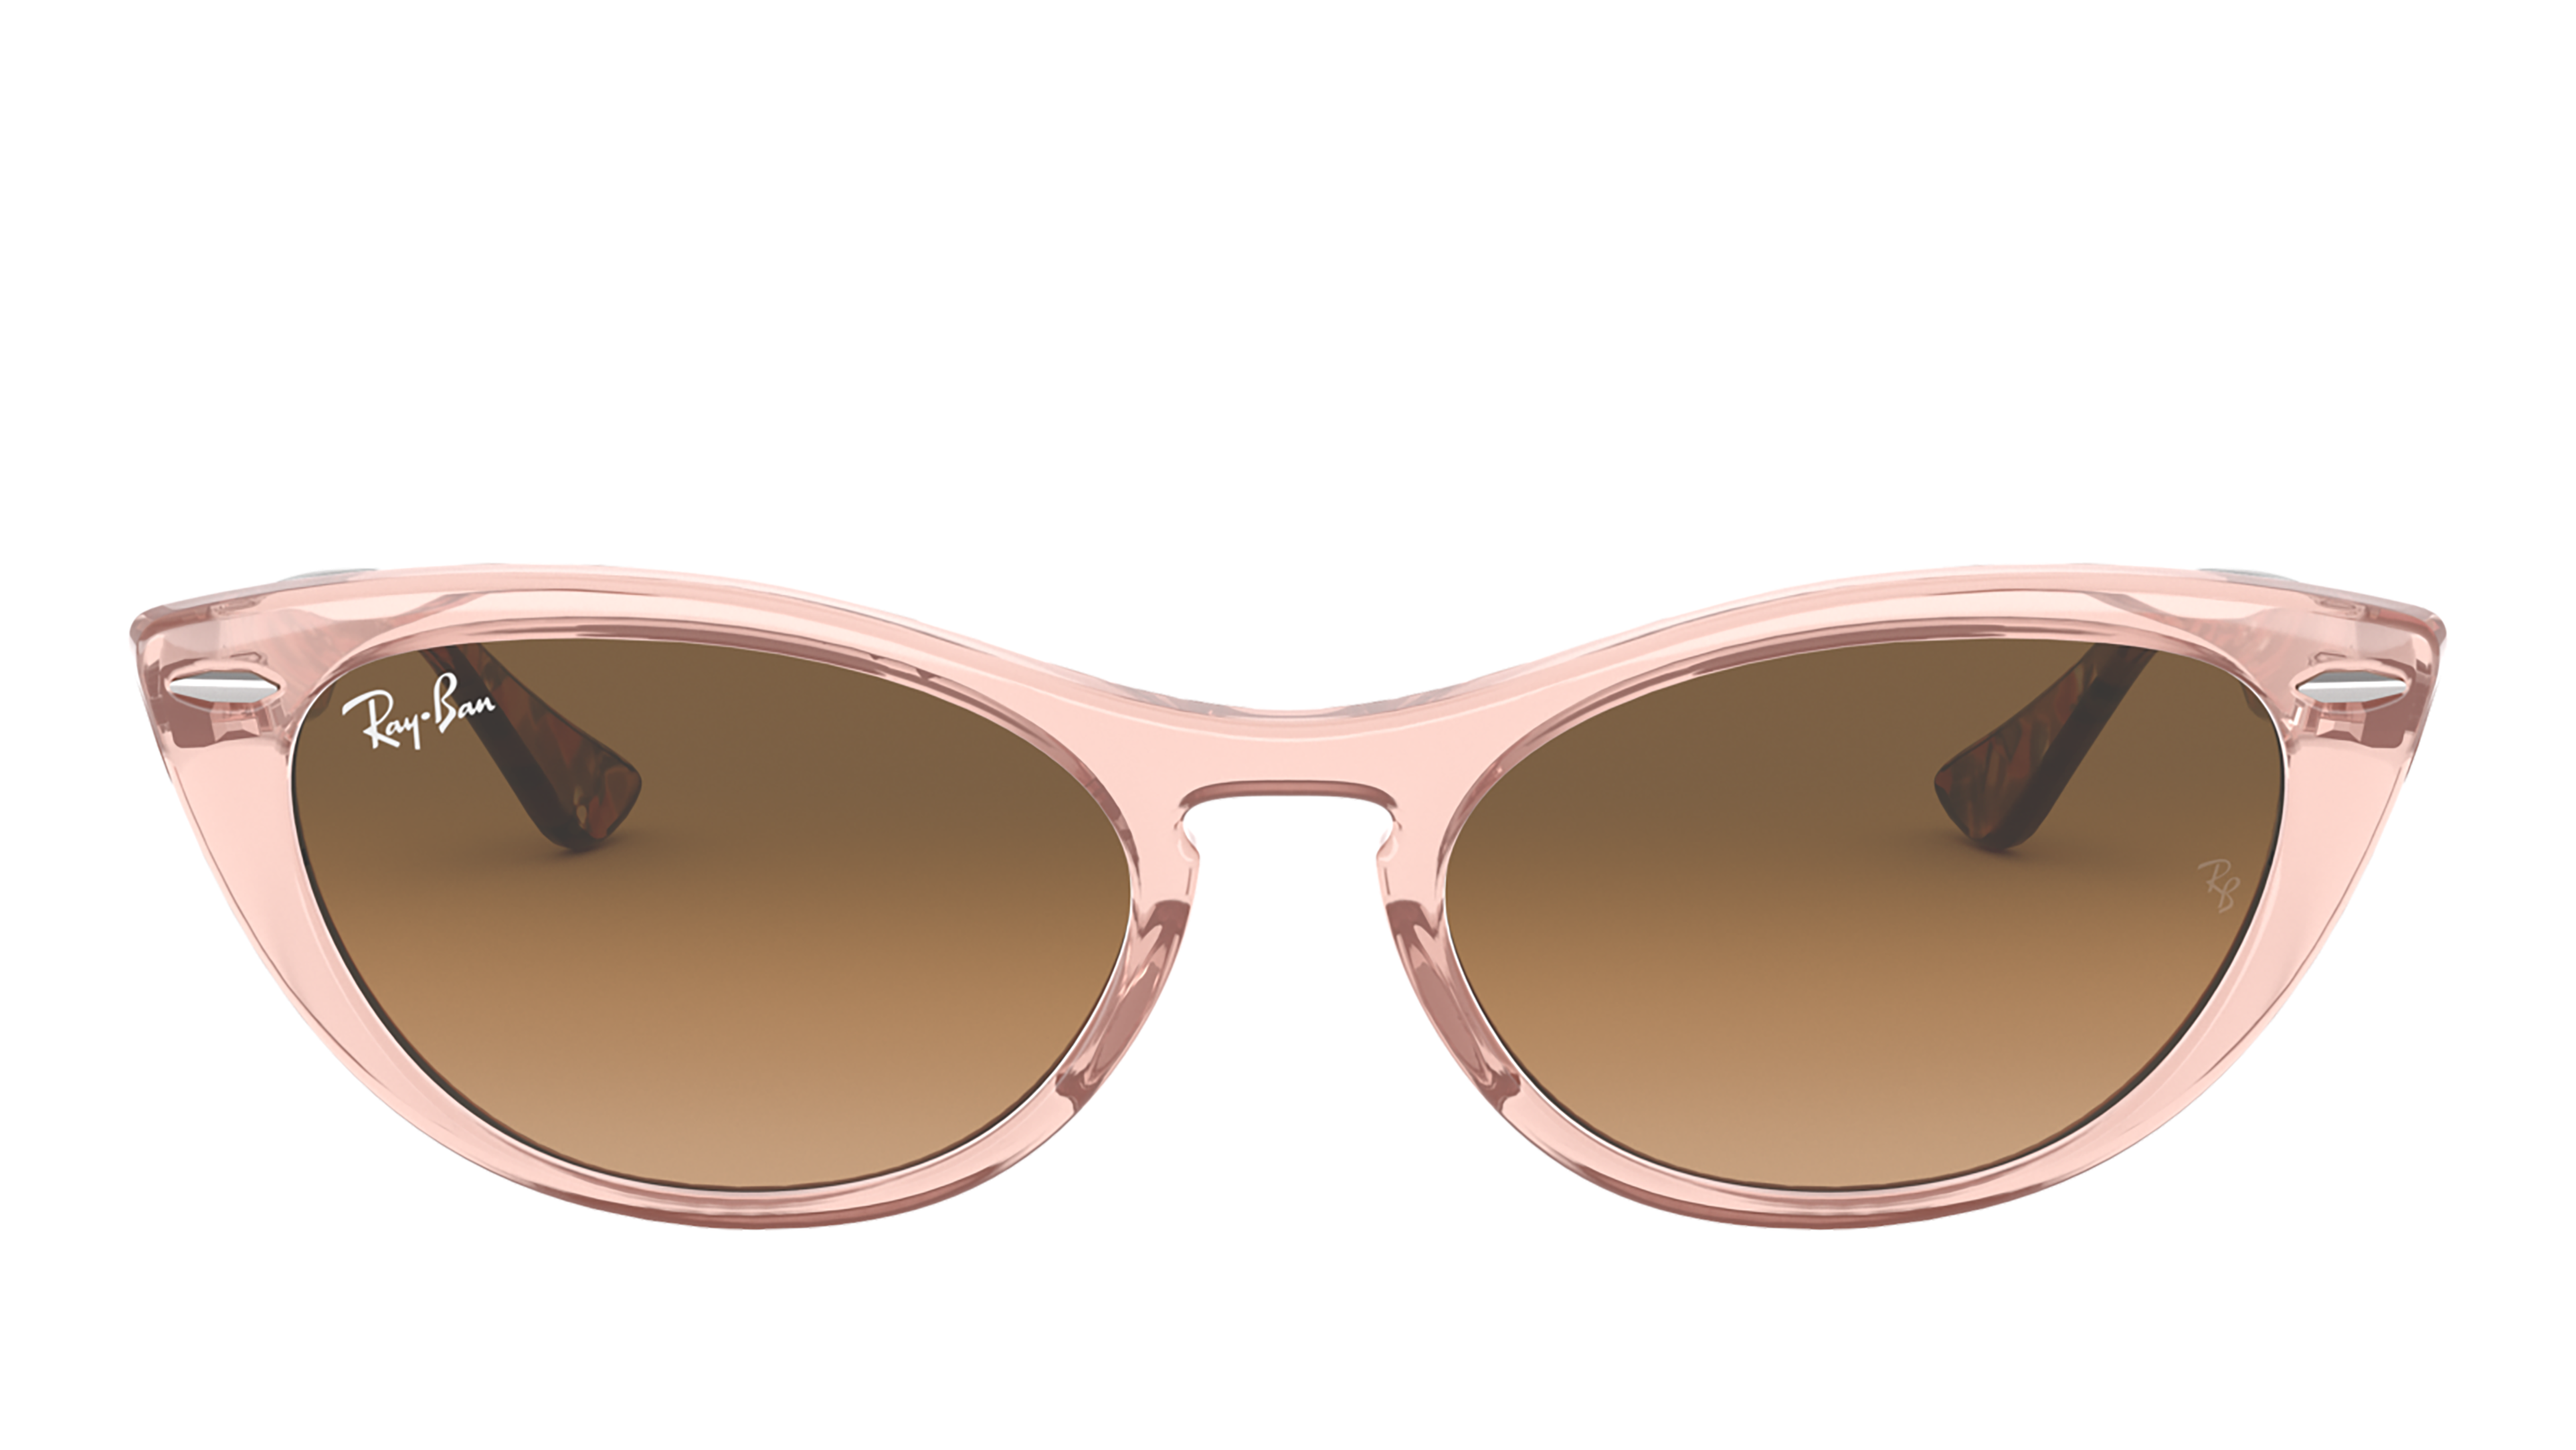 Front Ray-Ban Ray-Ban 0RB4314N 128151 54/18 Roze, Transparant/Bruin